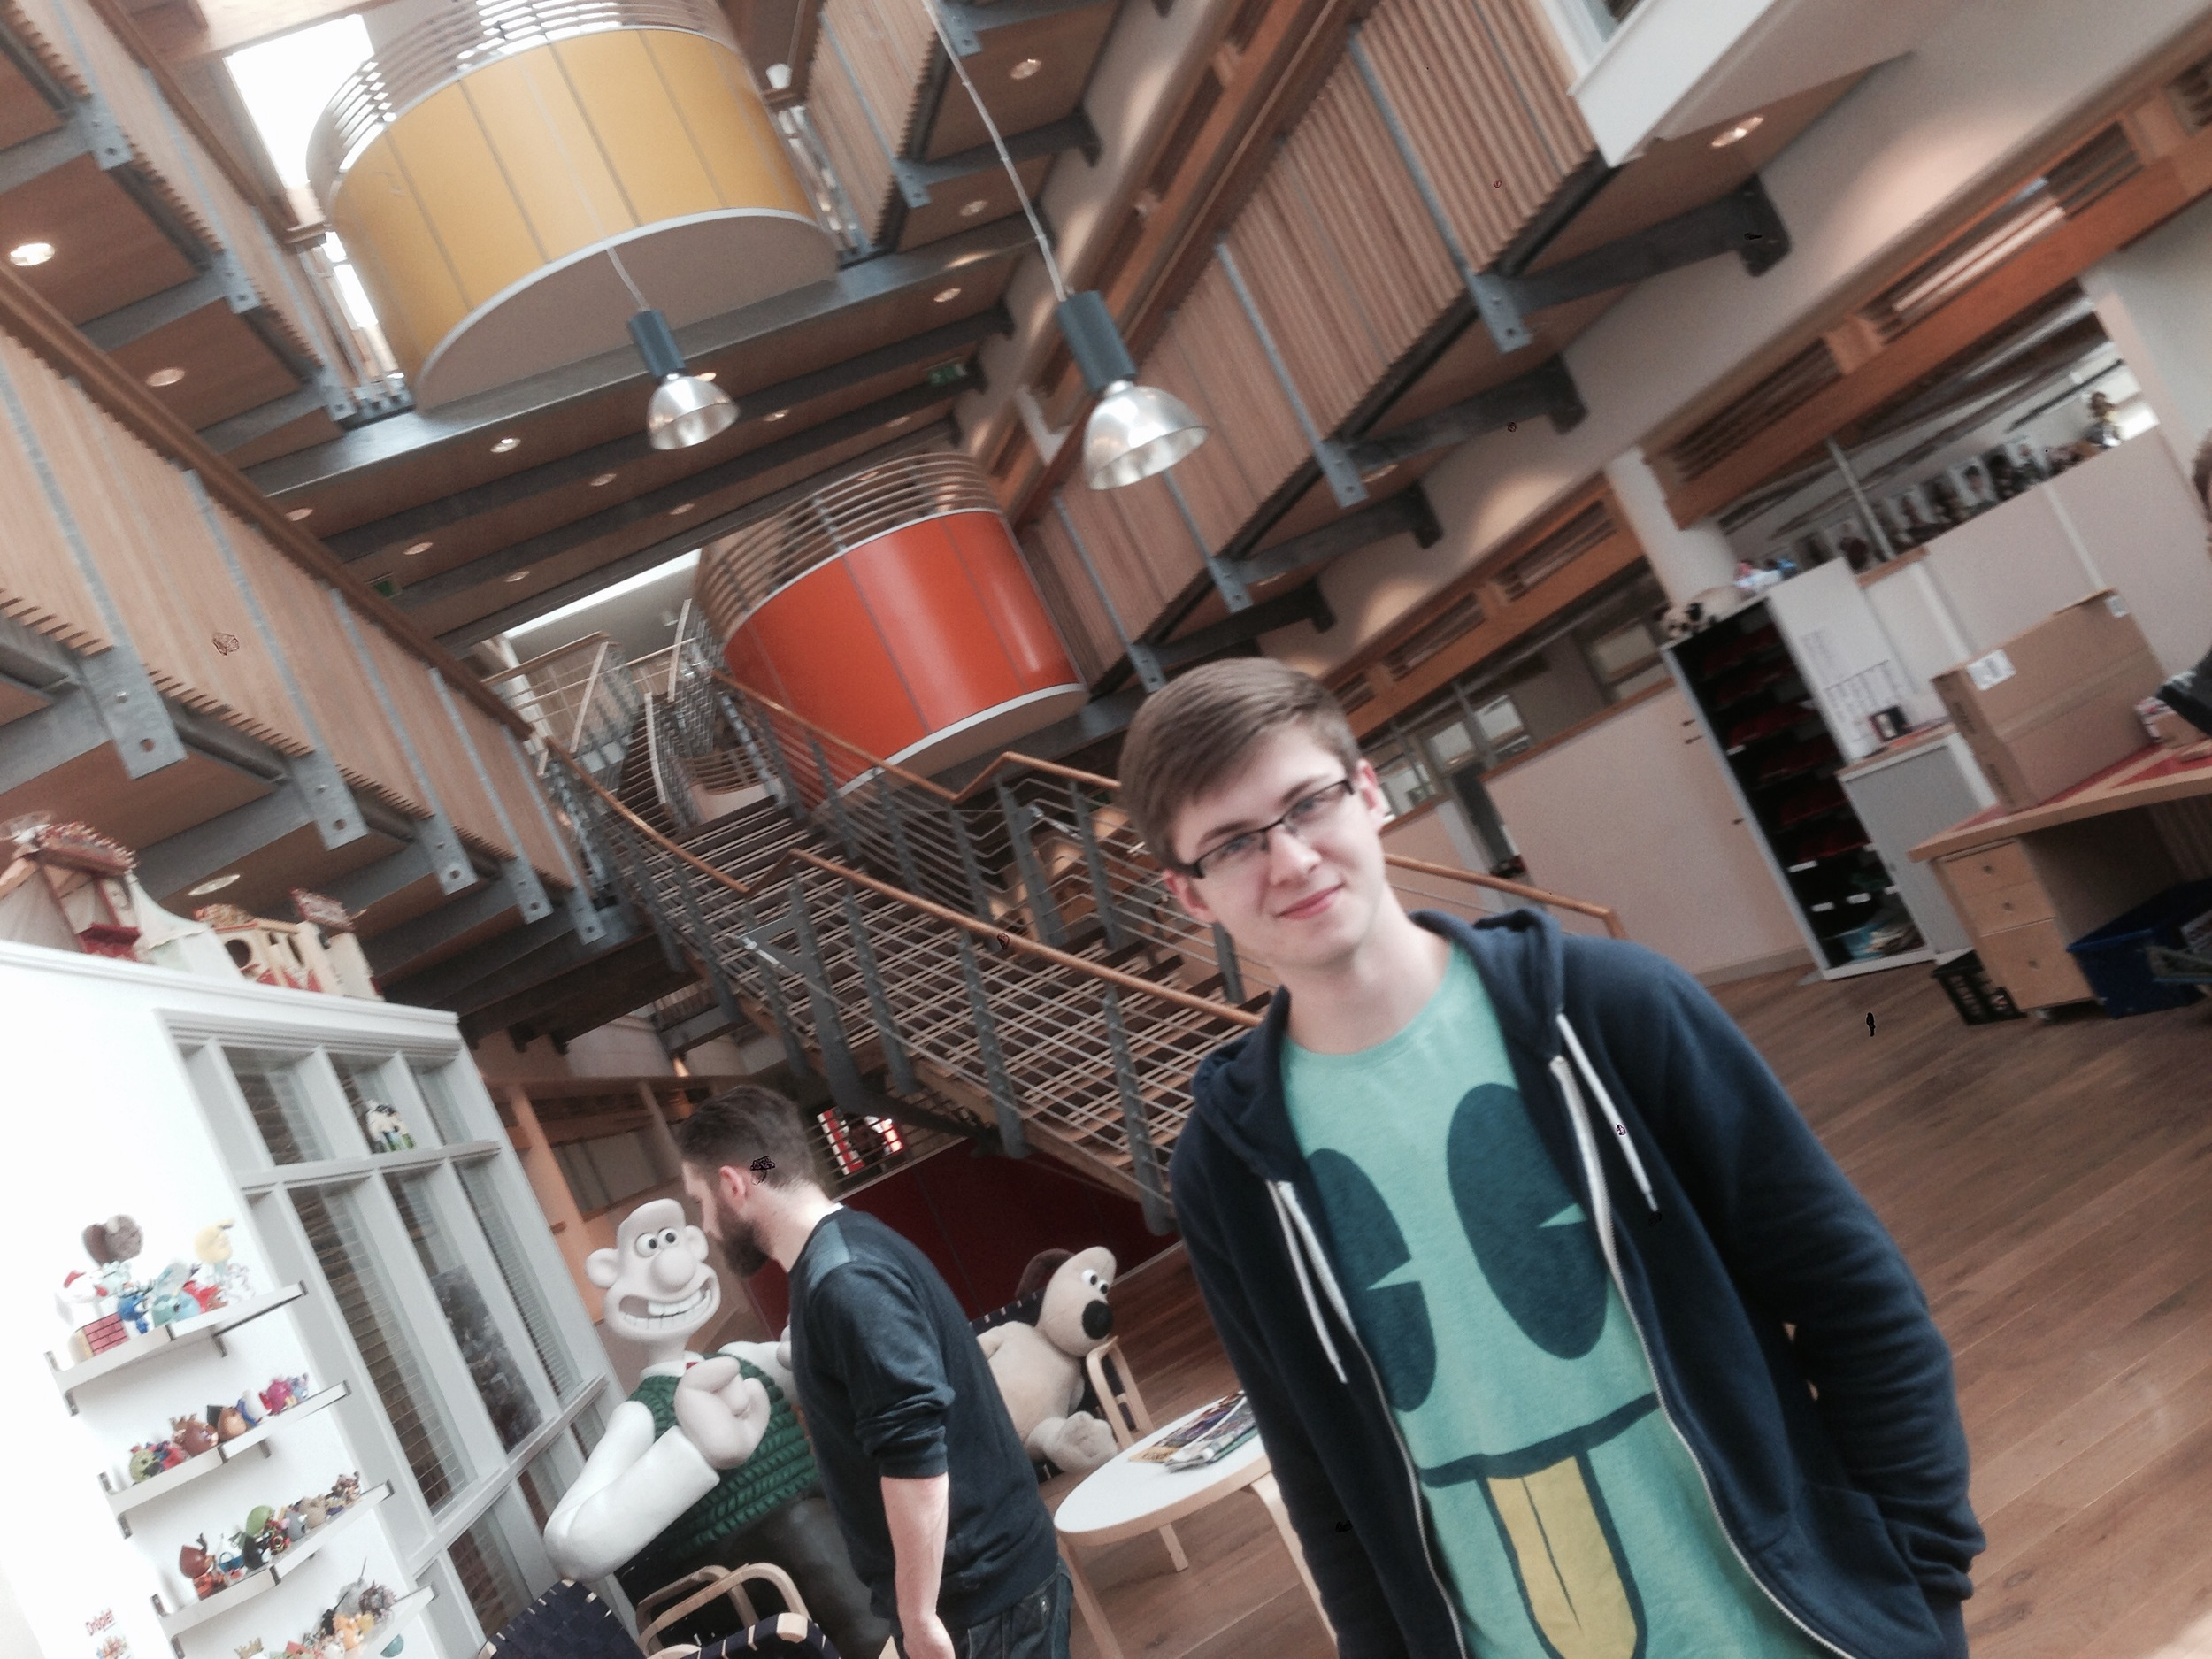 Eric in the Aardman Animations lobby